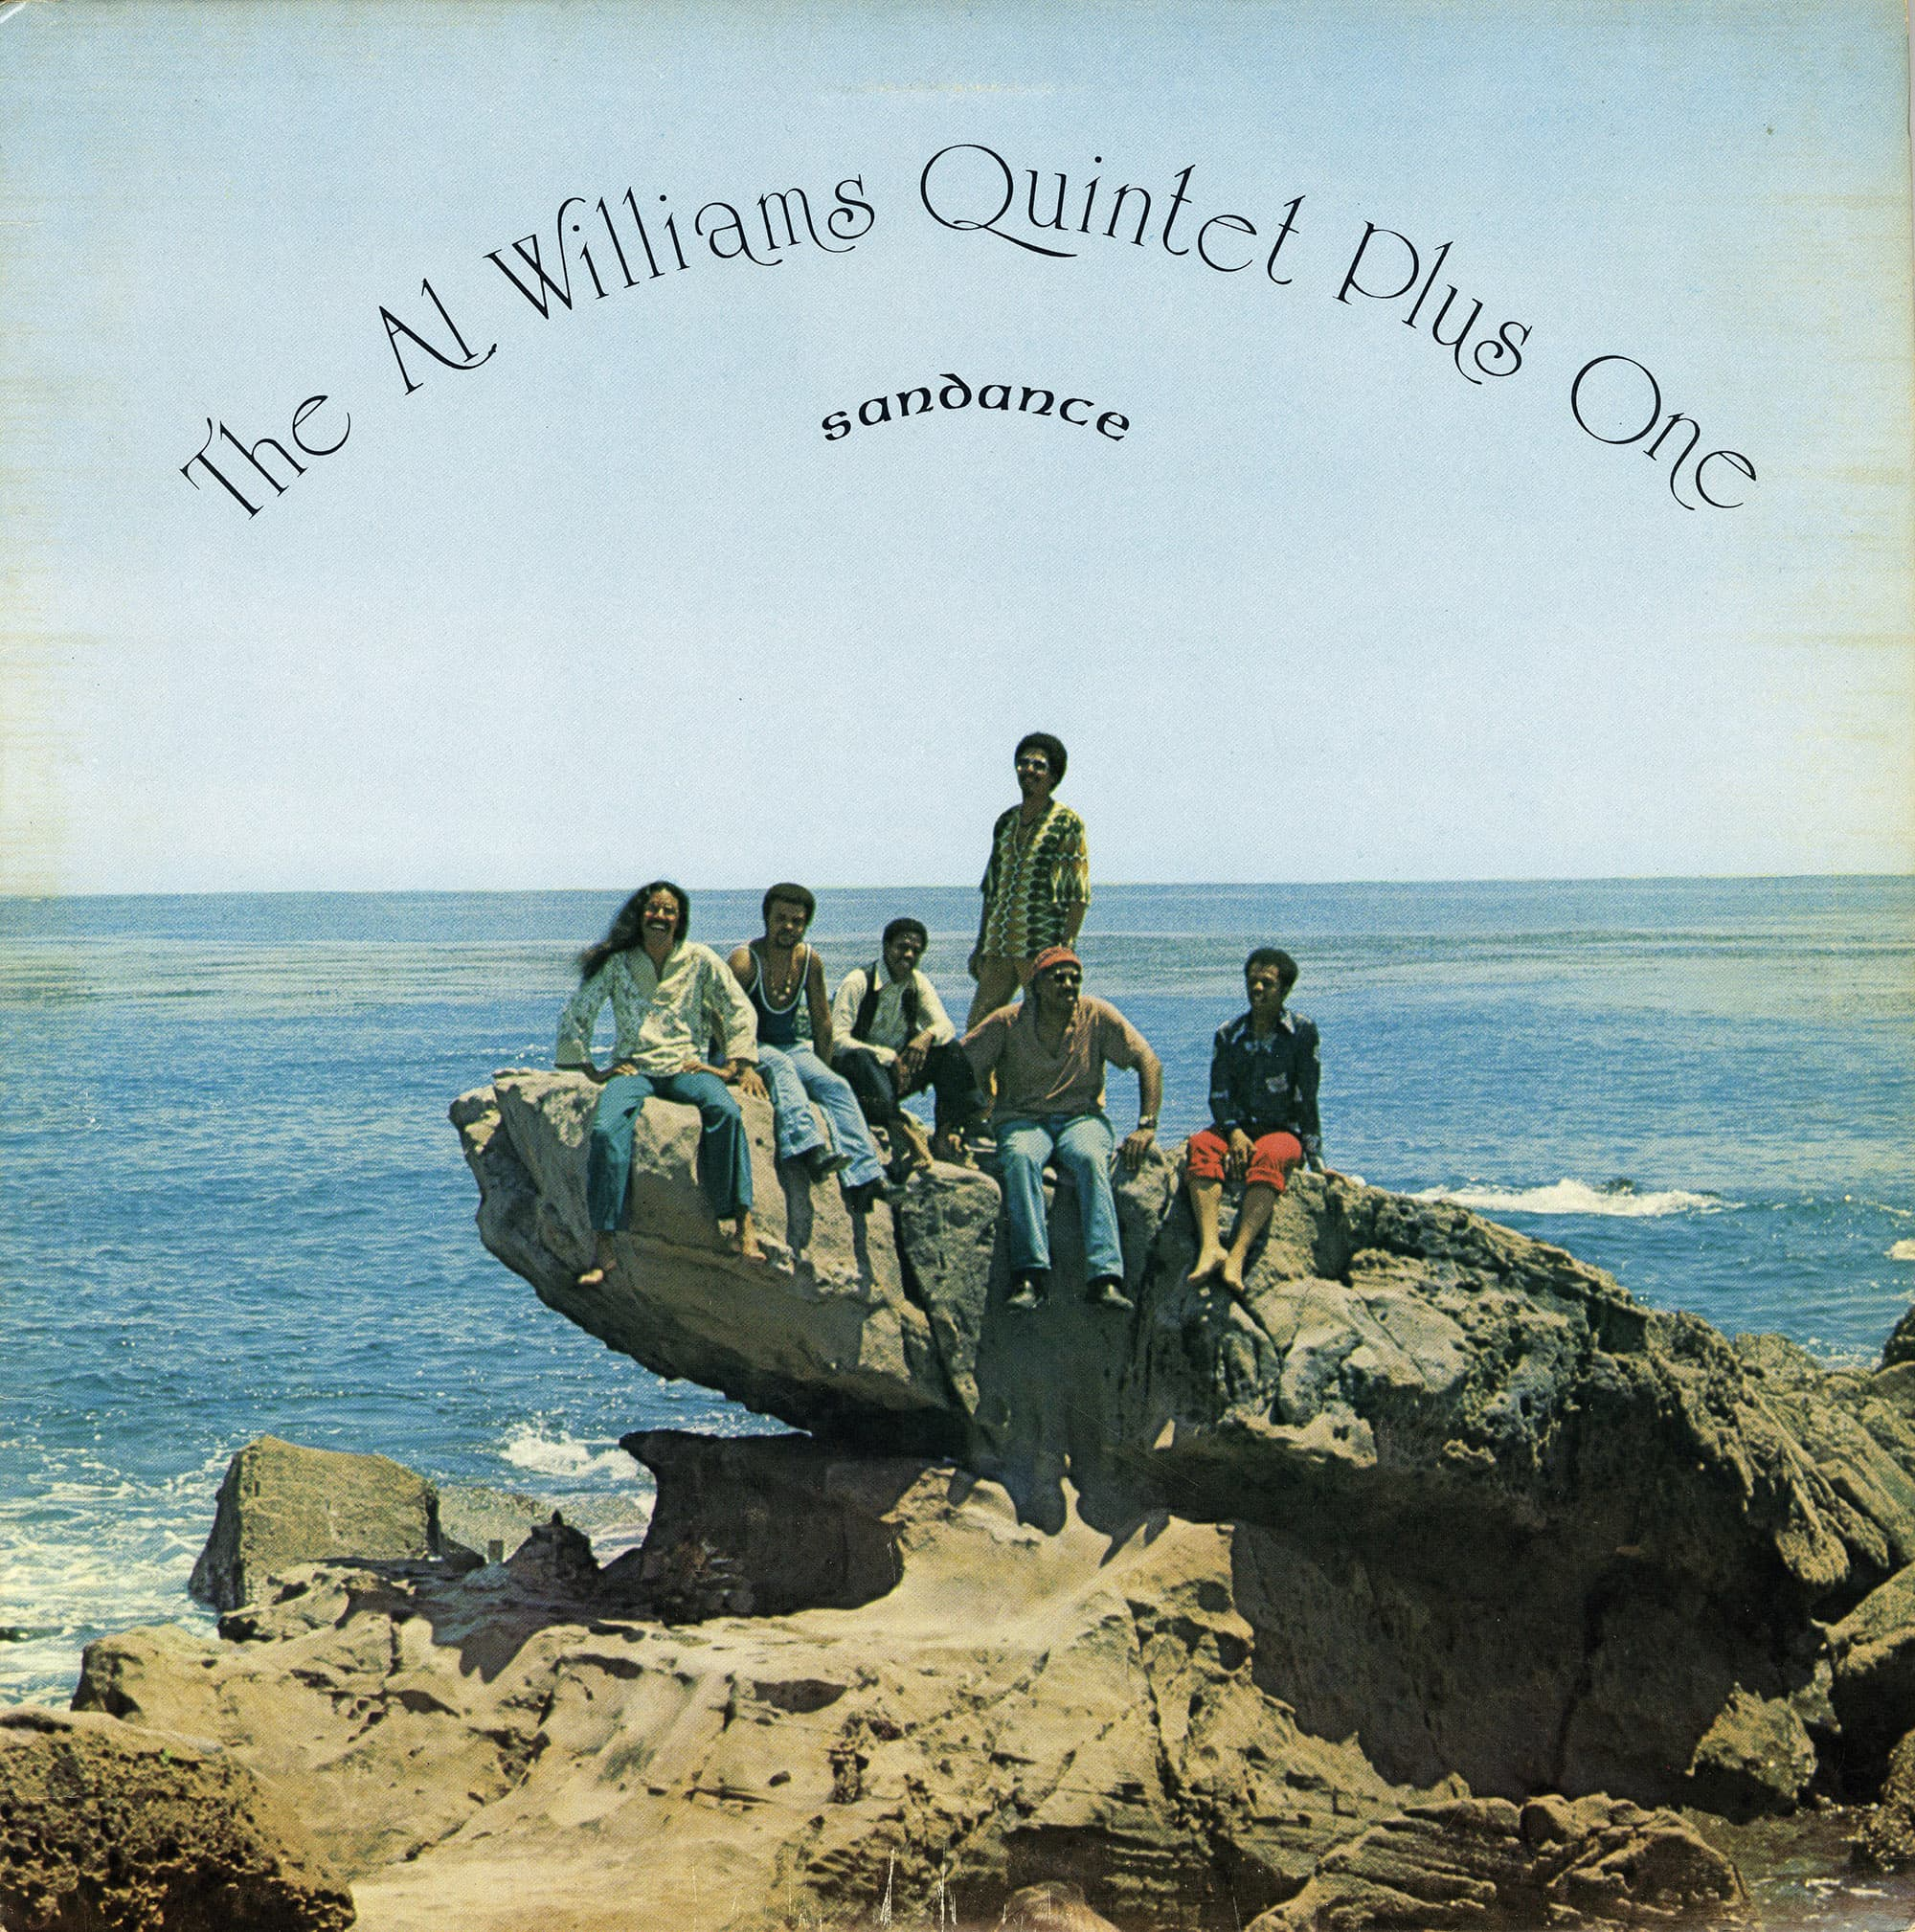 Al Williams Quintet Plus One - Sandance